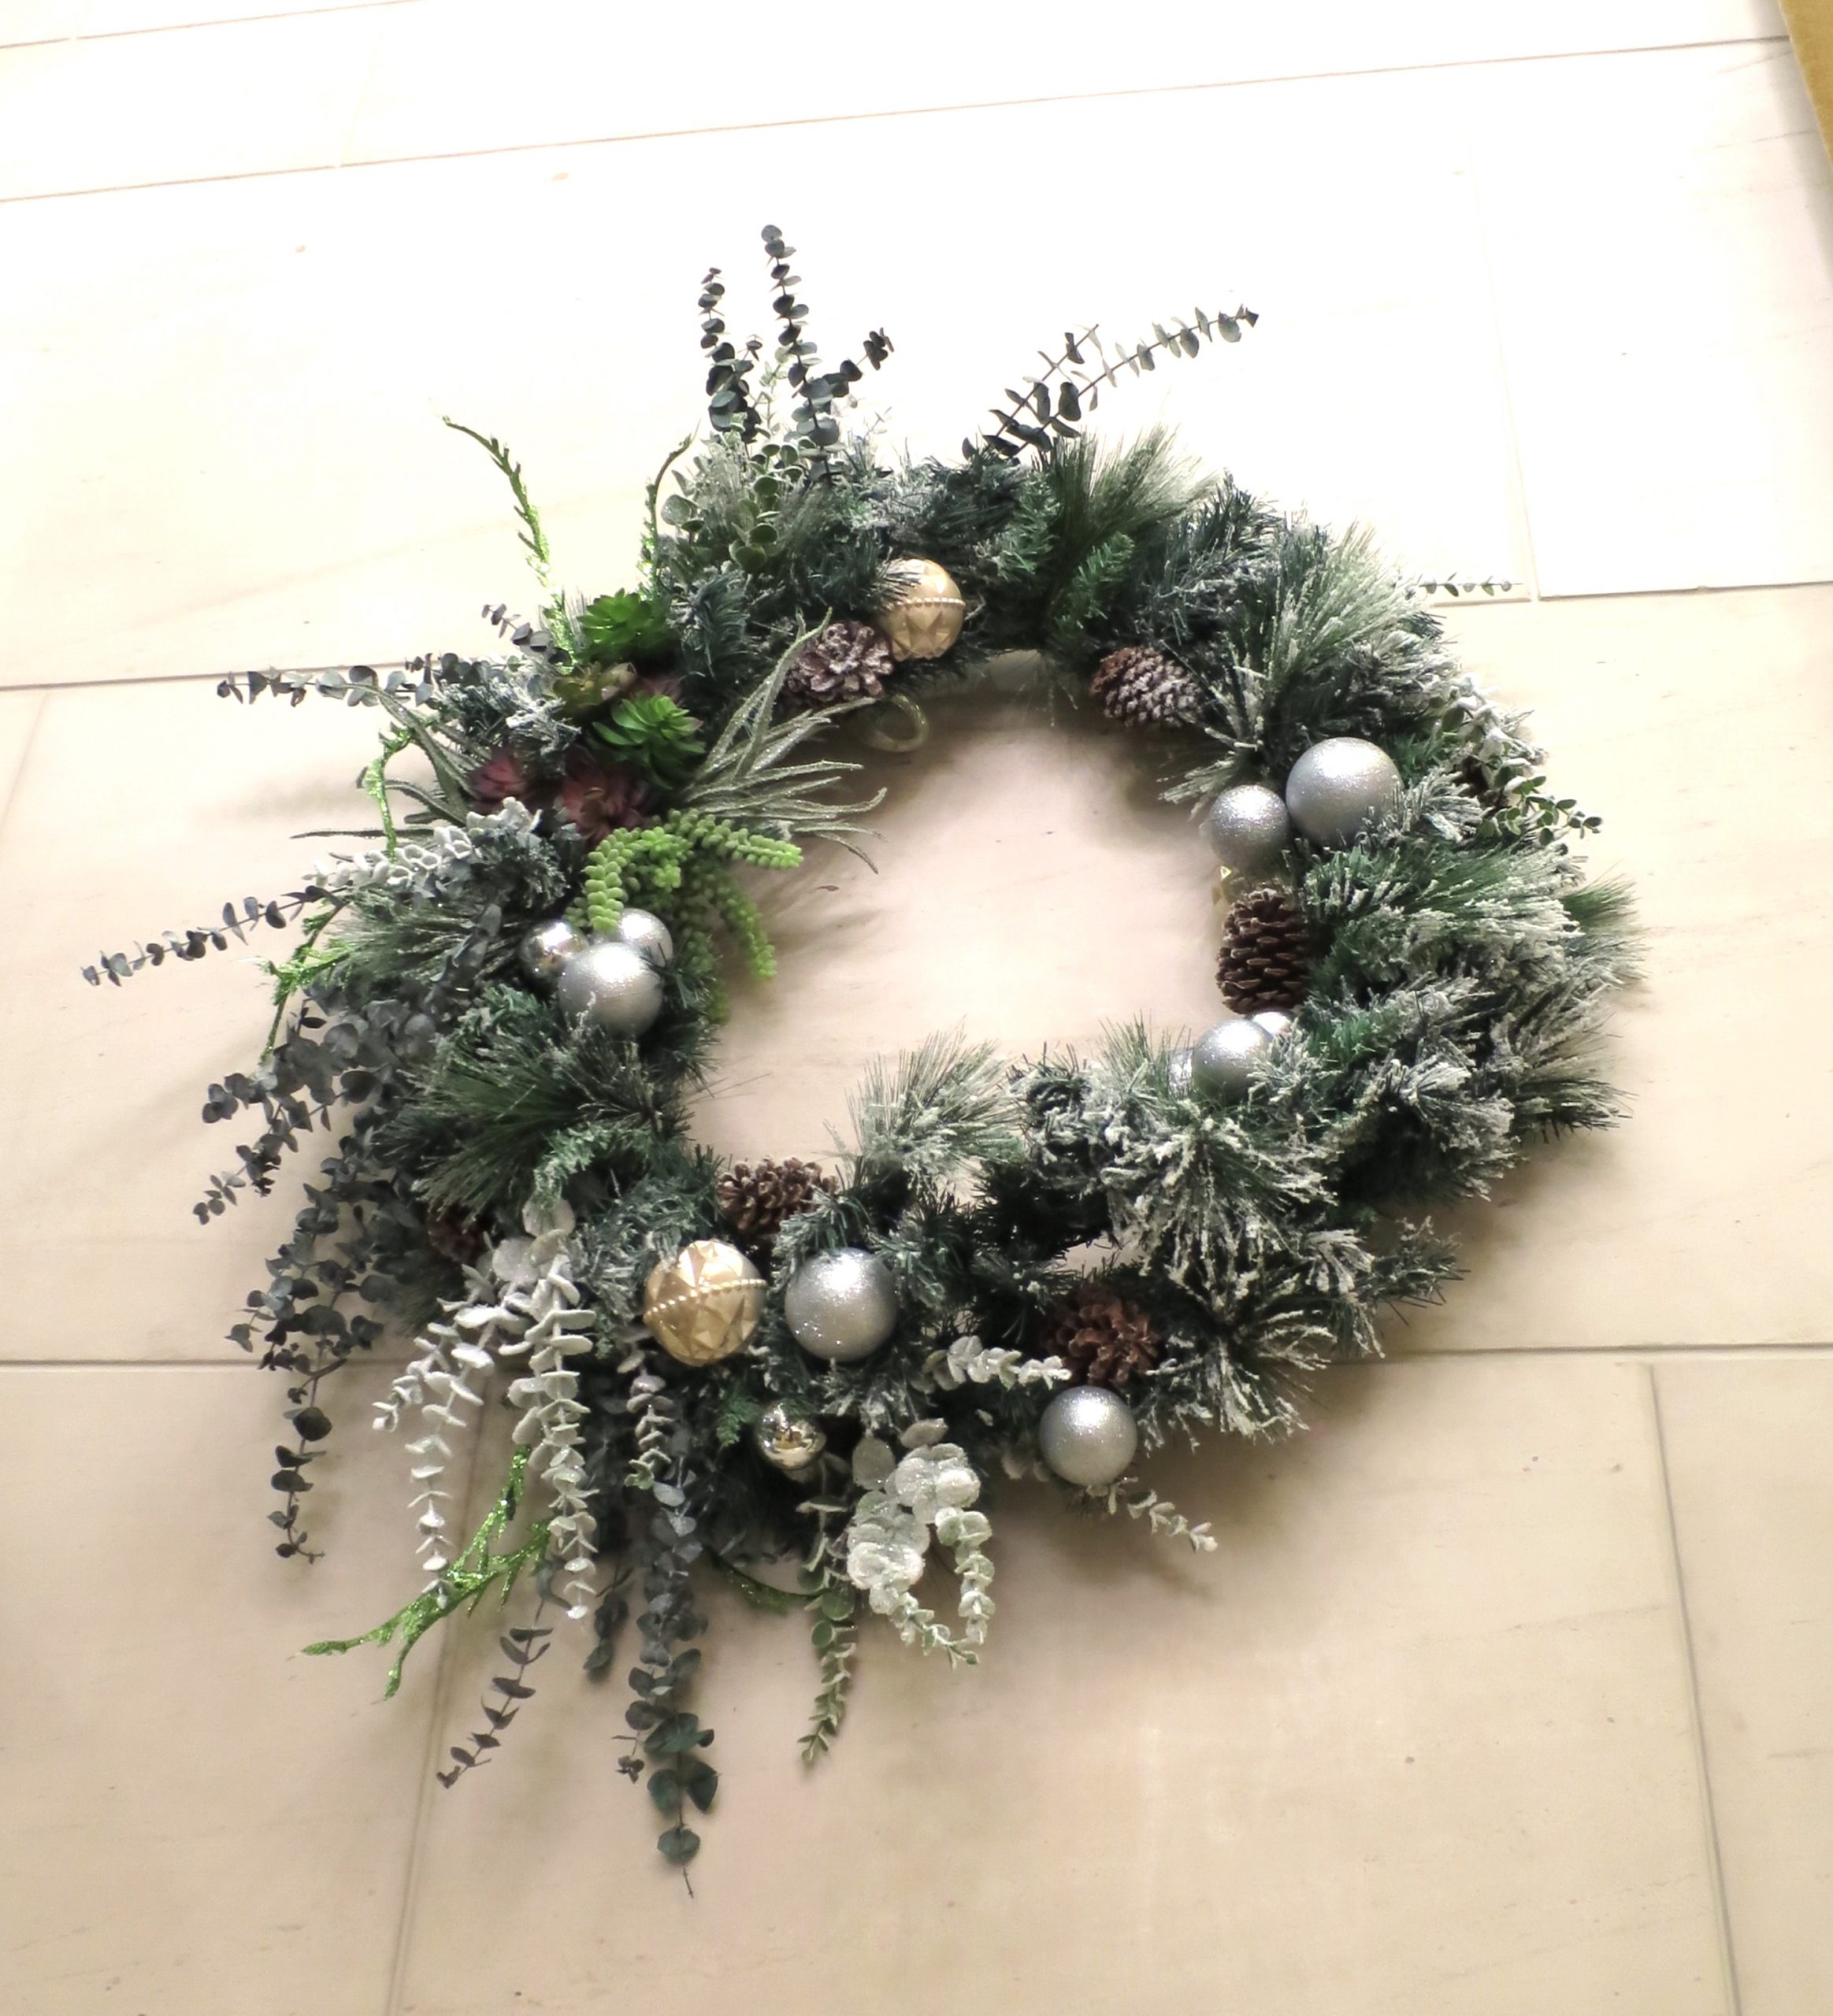 Christmas garland with succulents and evergreens and gold and silver ornaments hanging on a tile wall